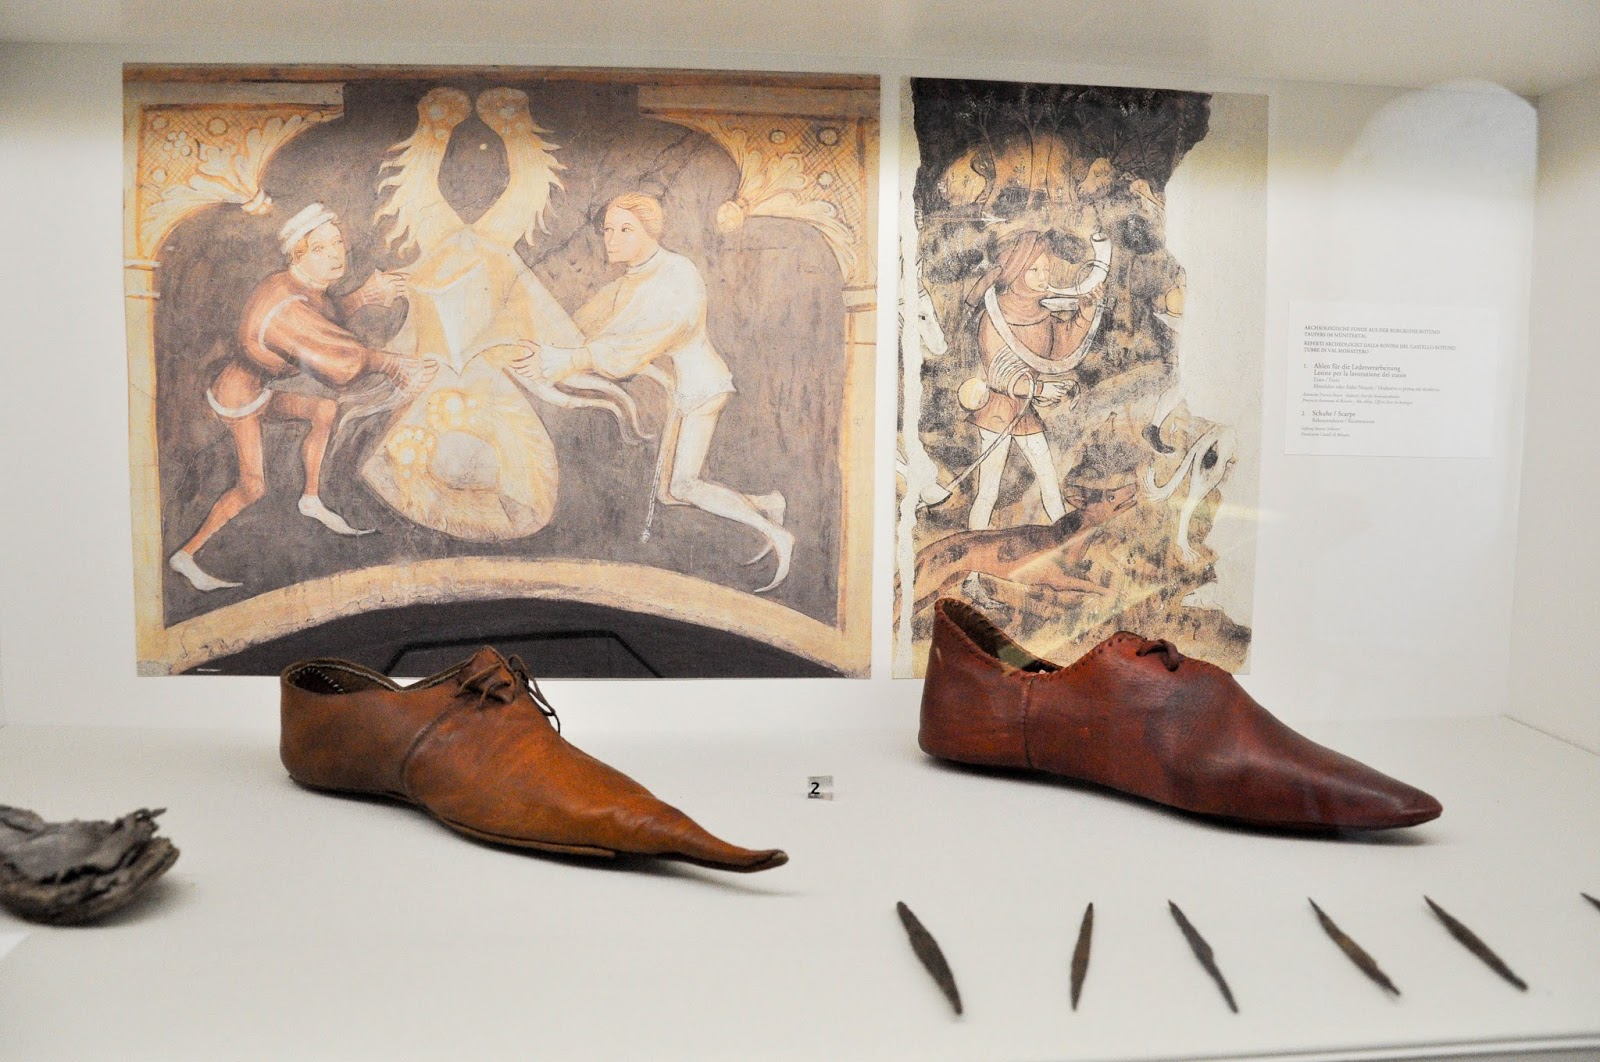 Medieval shoes and soles, Runkelstein Castle, Bolzano, South Tyrol, Italy